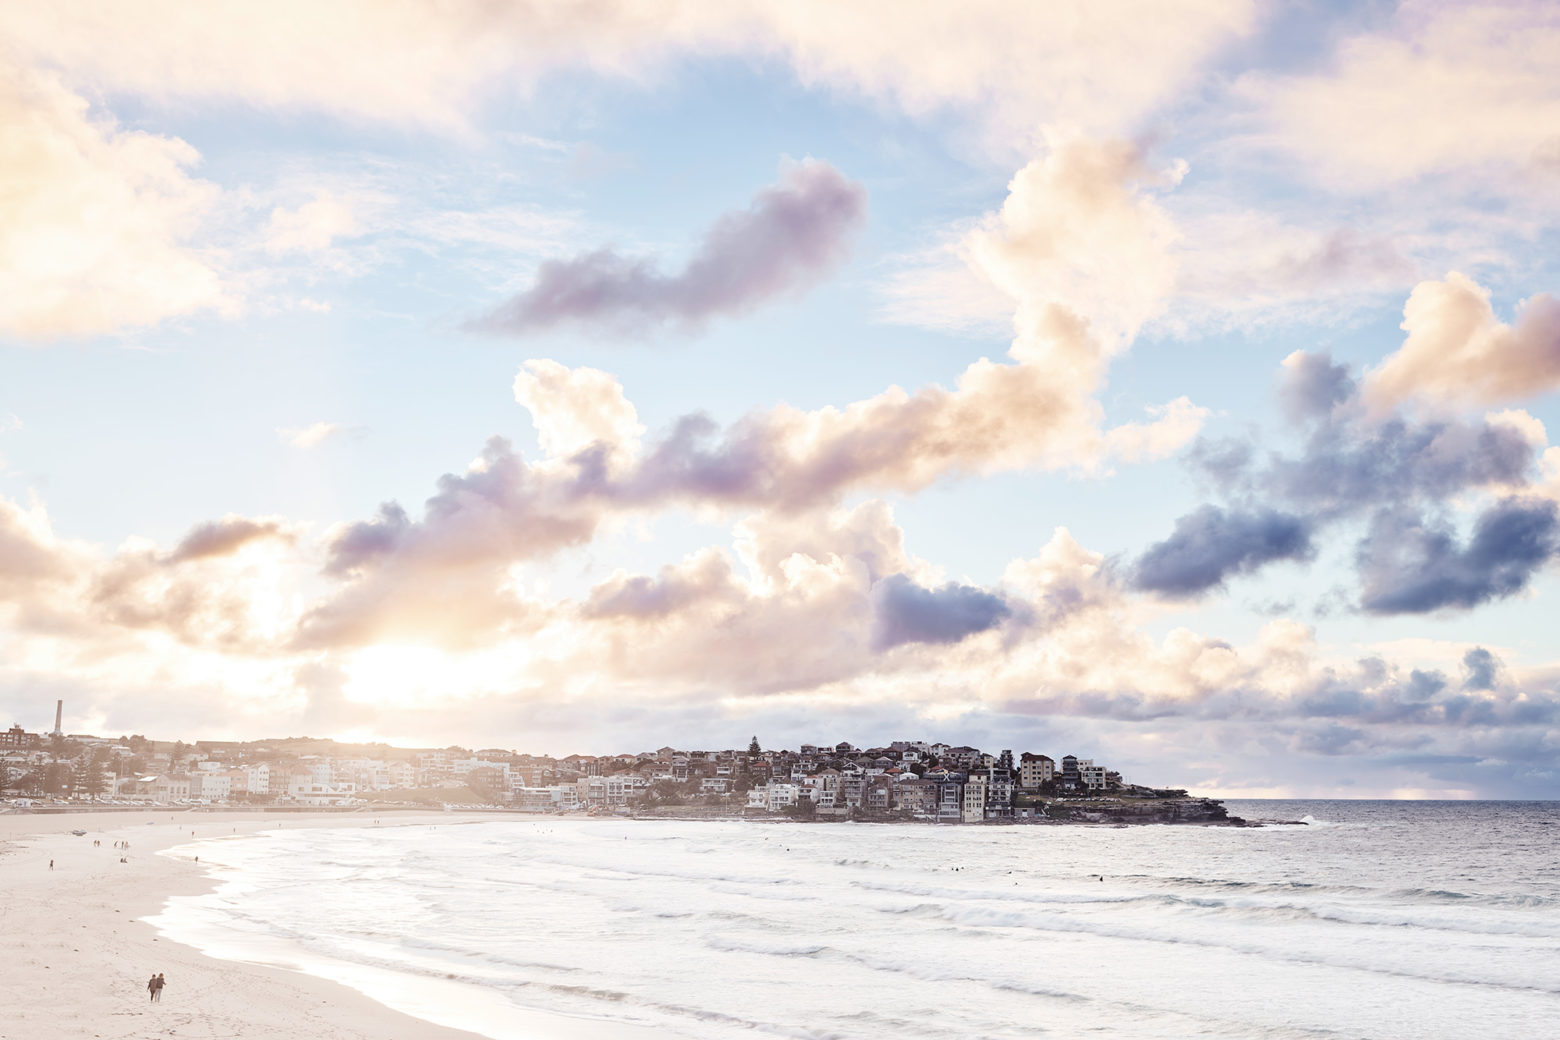 The constant battle between sun and clouds, Bondi Beach